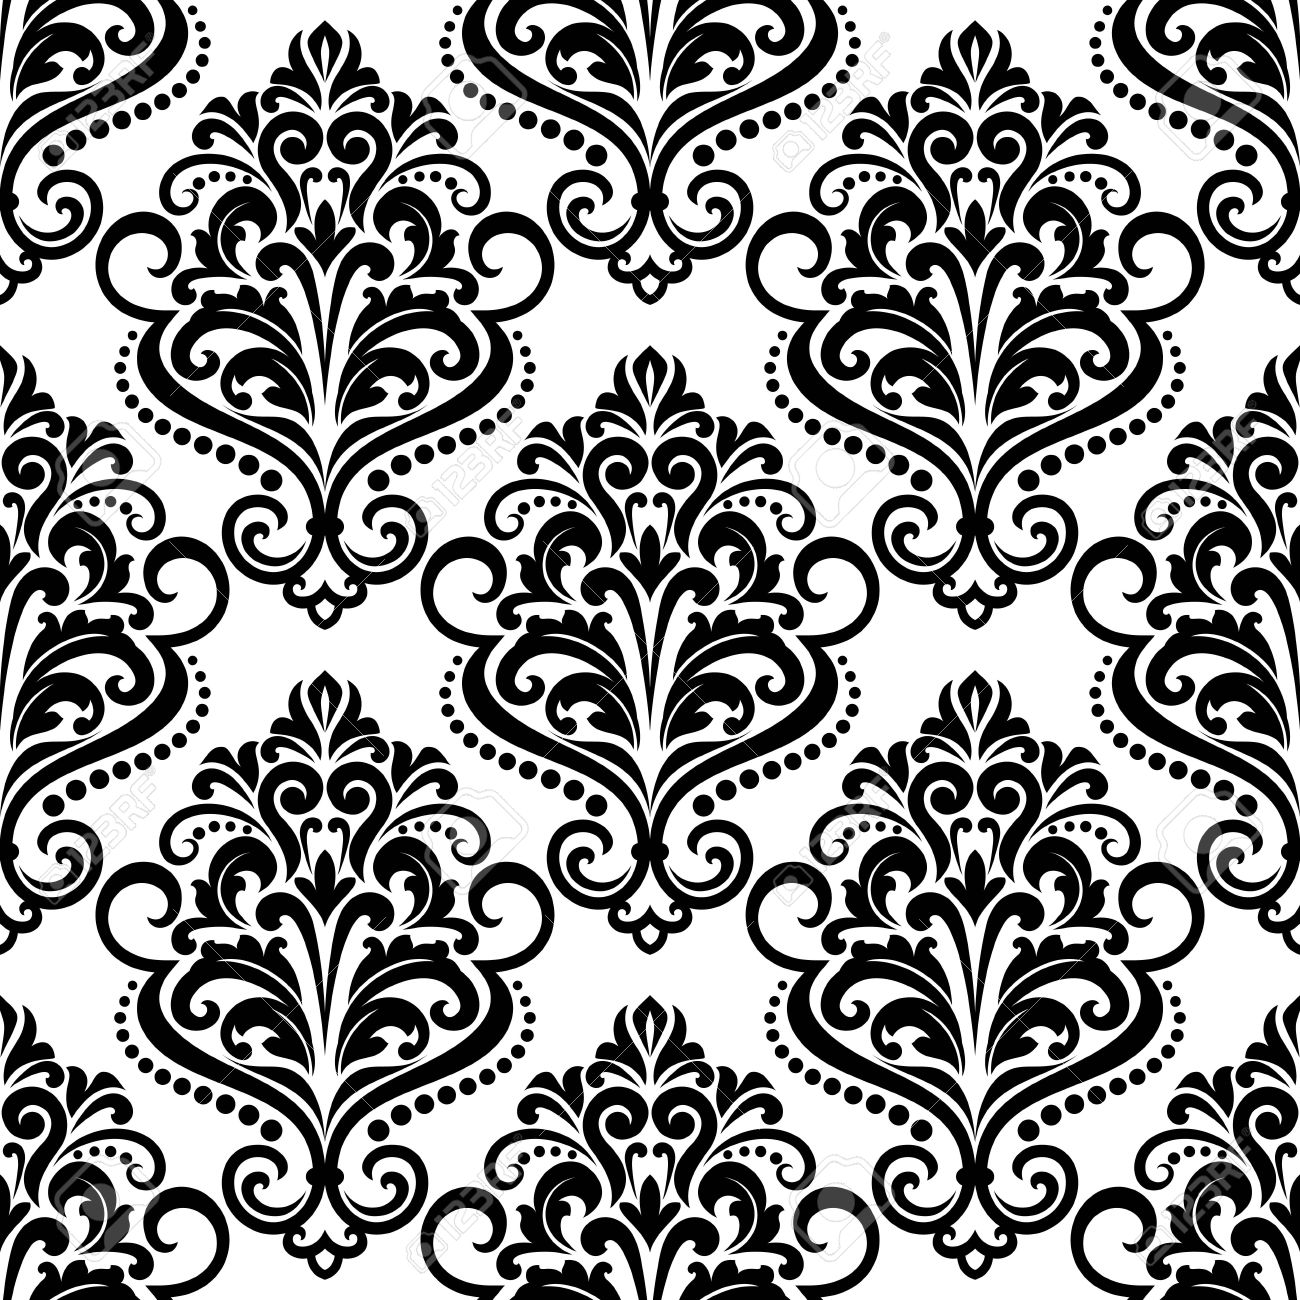 Black And White Floral Seamless Pattern Background With Arabesque  -> Floral Fundo Preto